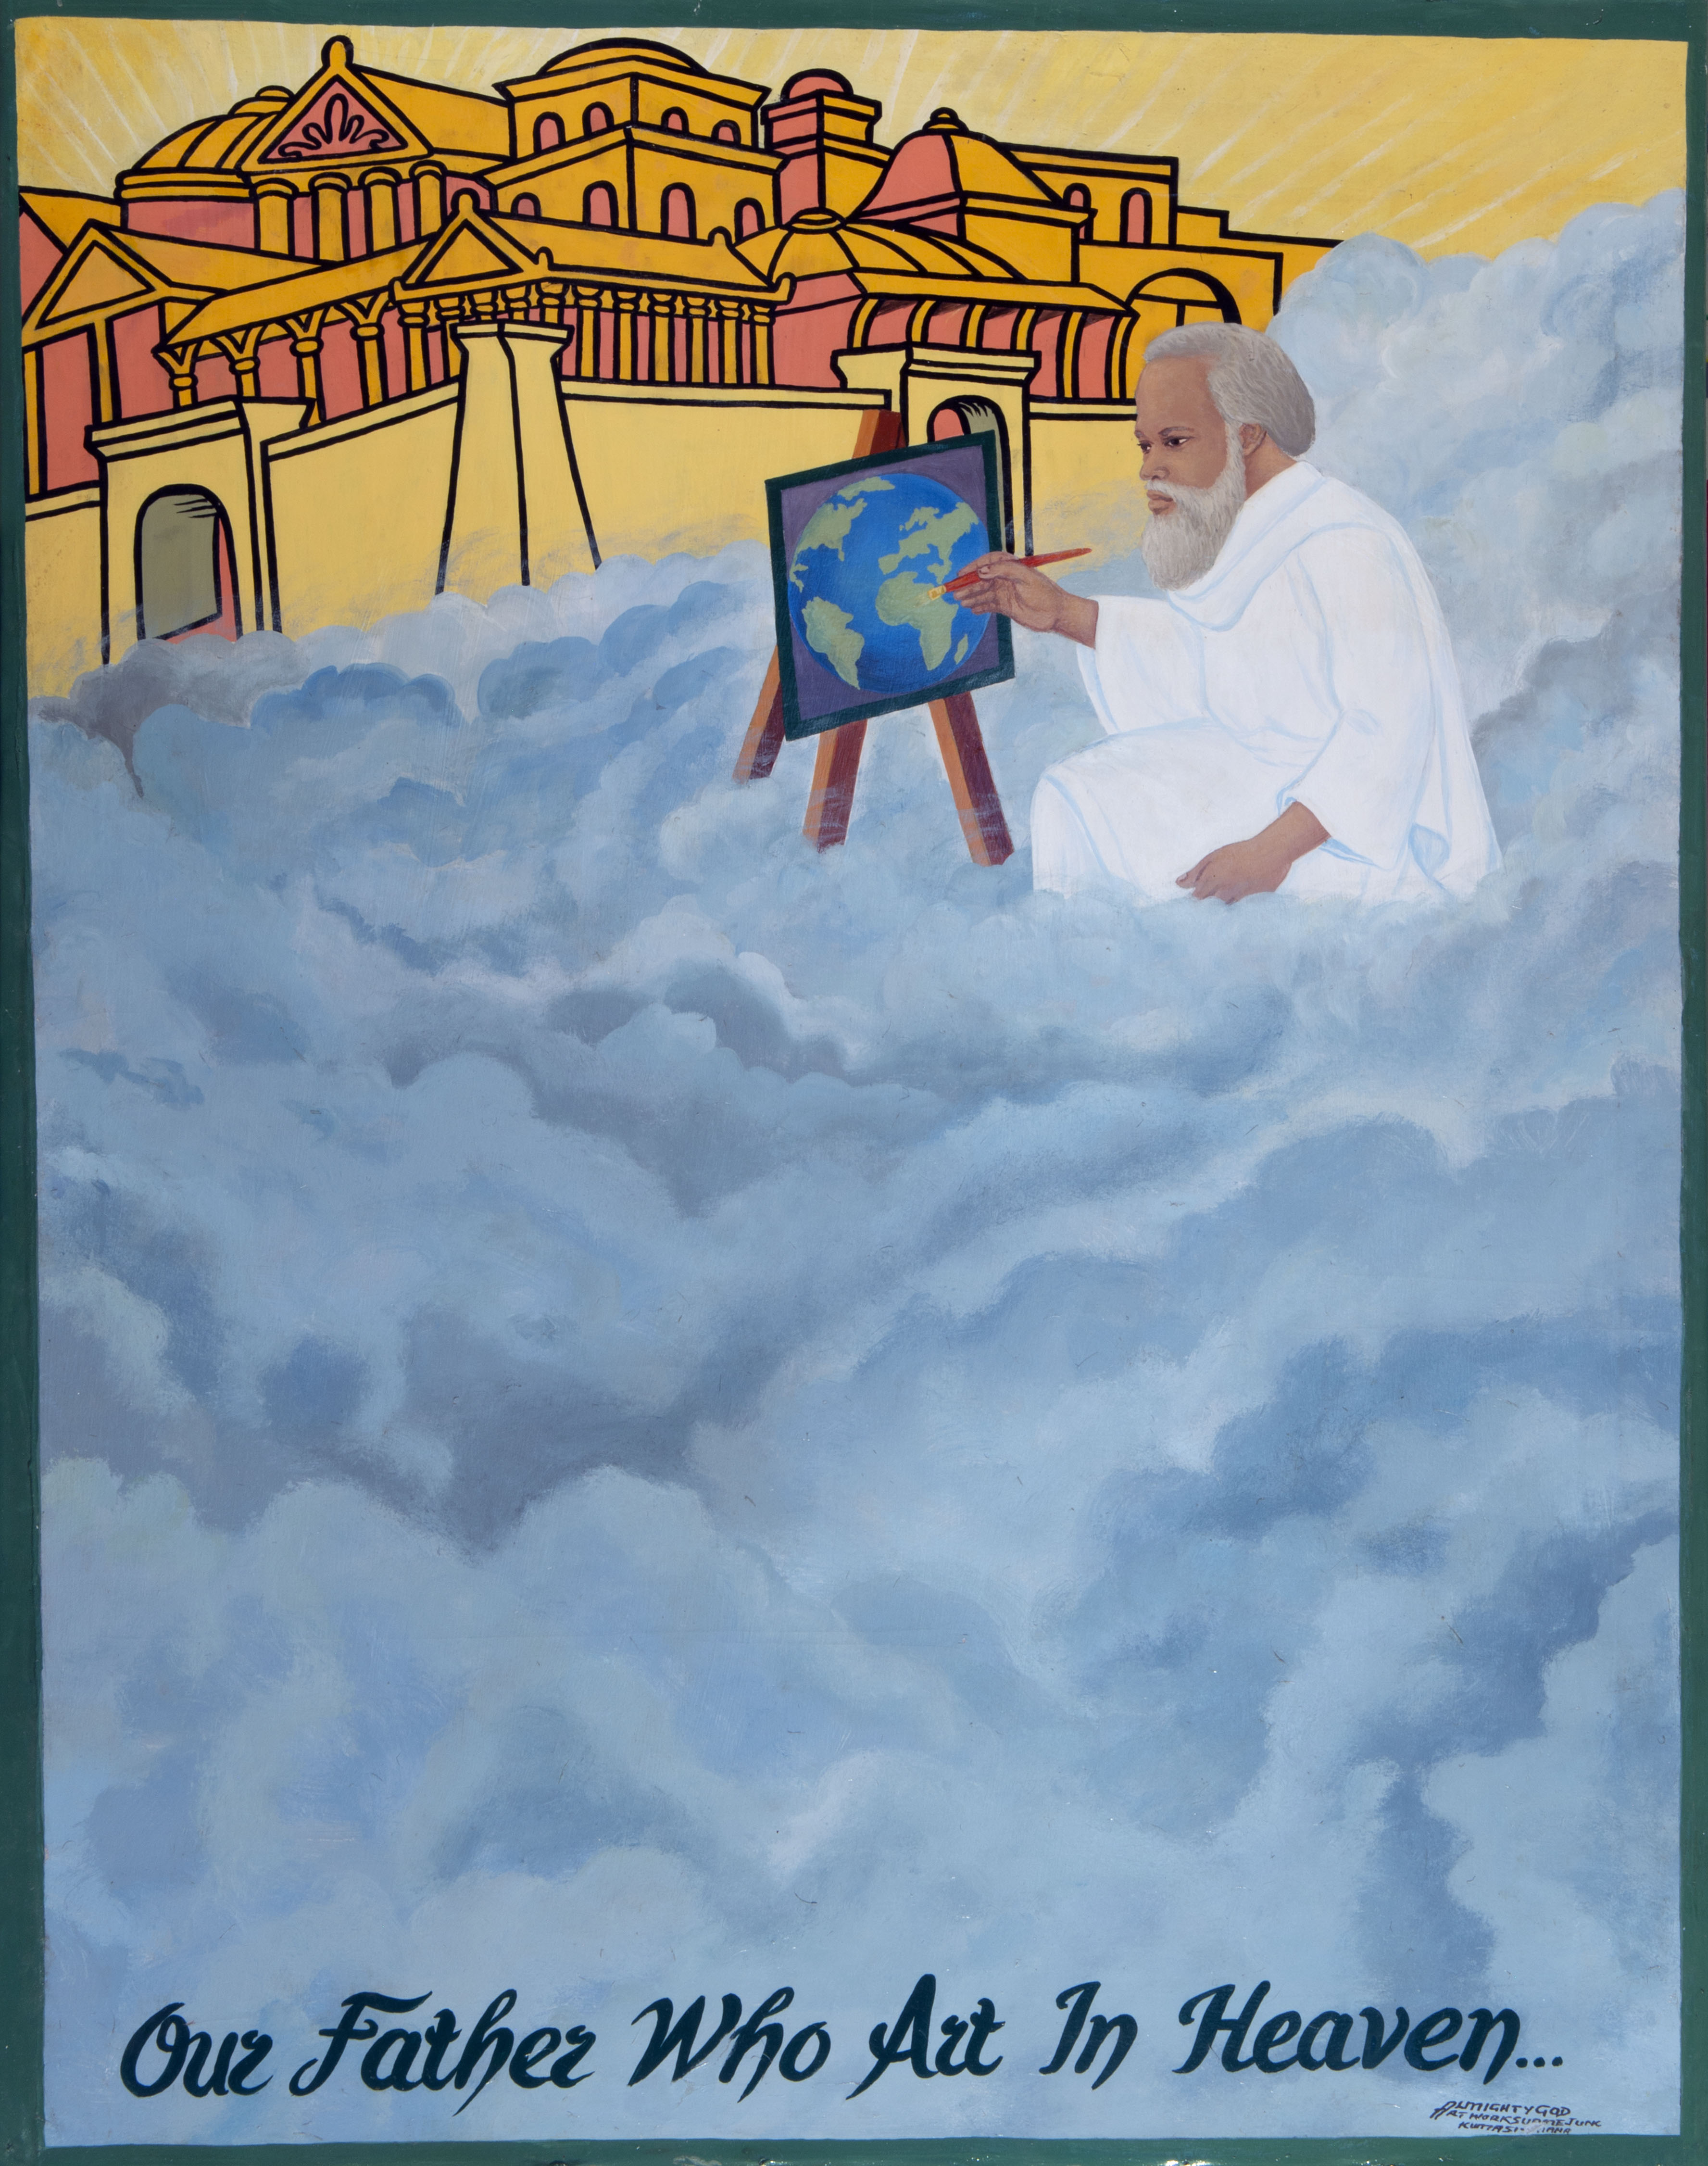 Our father who art in heaven, acrylique sur toile, 148 x 120 cm9_OAF3